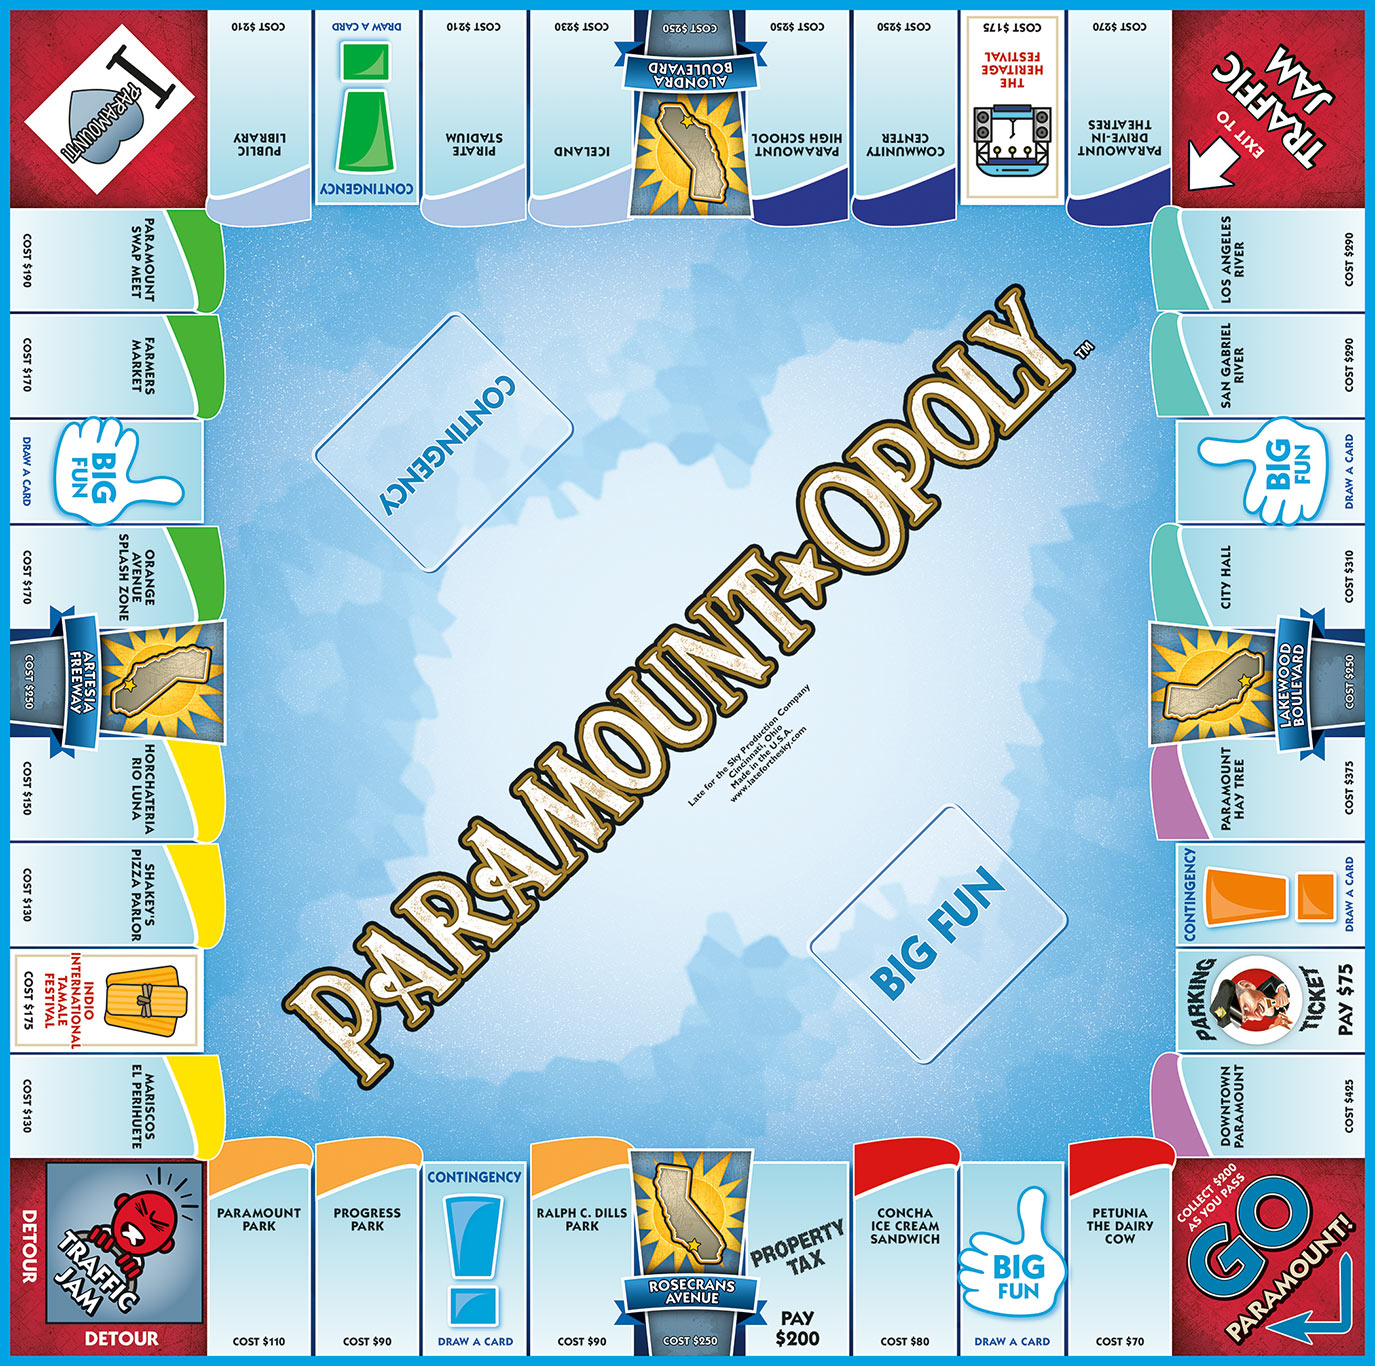 PARAMOUNT-OPOLY Board Game